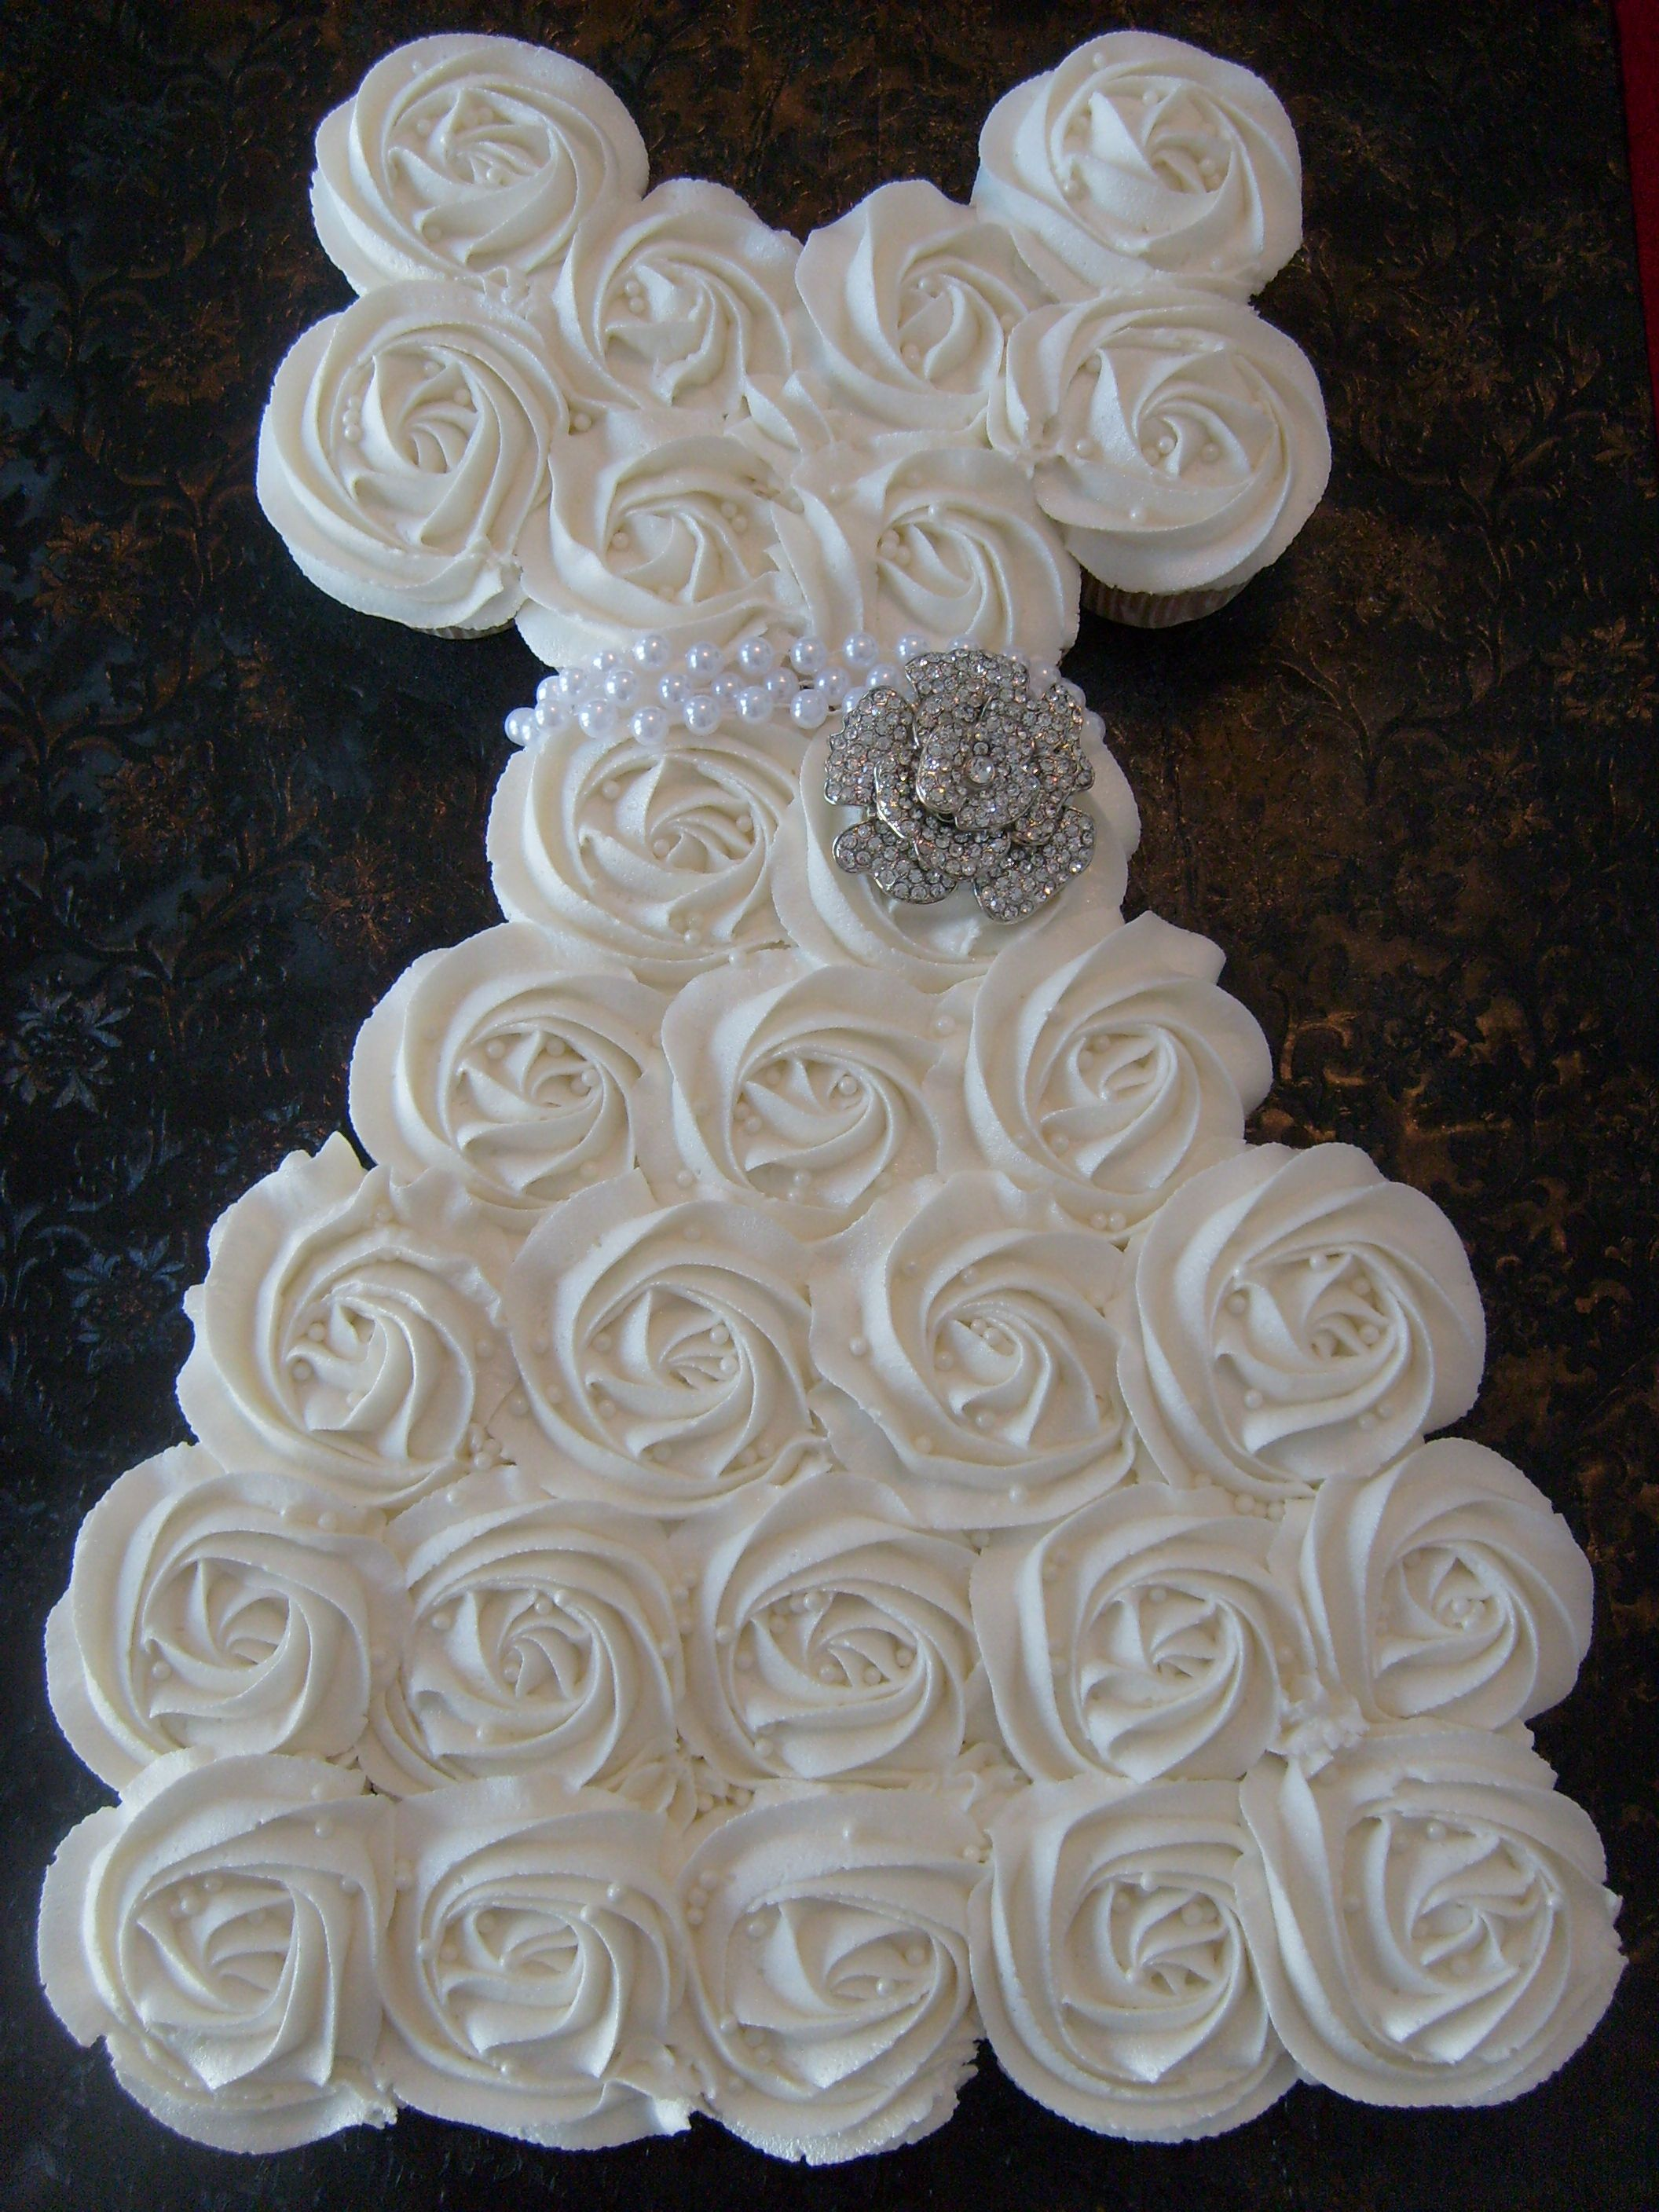 Wedding Cupcake Wedding Dress 27 cupcakes create this wedding dress shower cake baking bridal cupcake pull apart cake